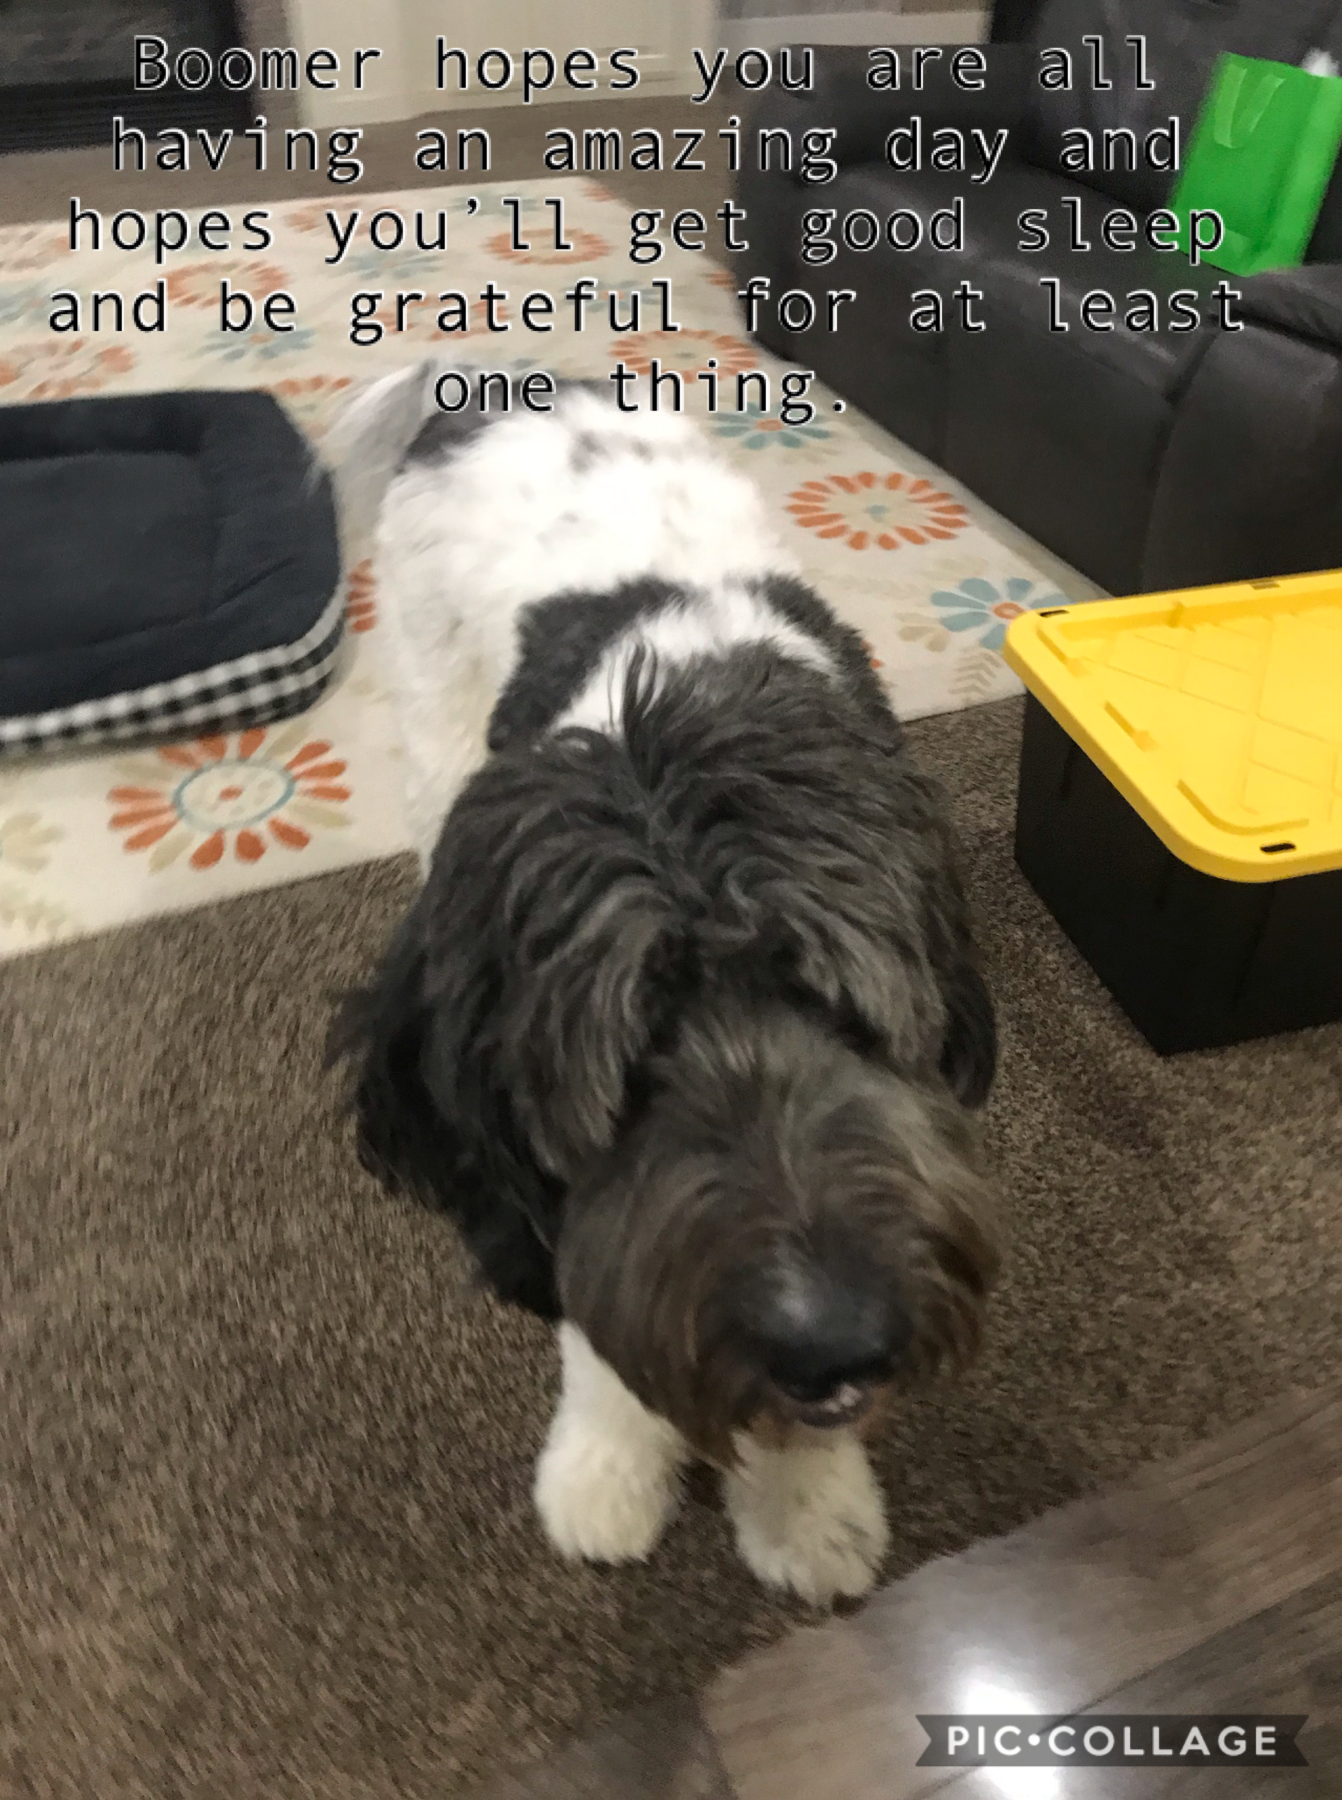 Meet my boyfriend's dog Boomer. Sooooo precious I love him (both of them oops haha) what's something you're grateful for? I'm grateful for opportunities however rare and difficult 2/25/2020